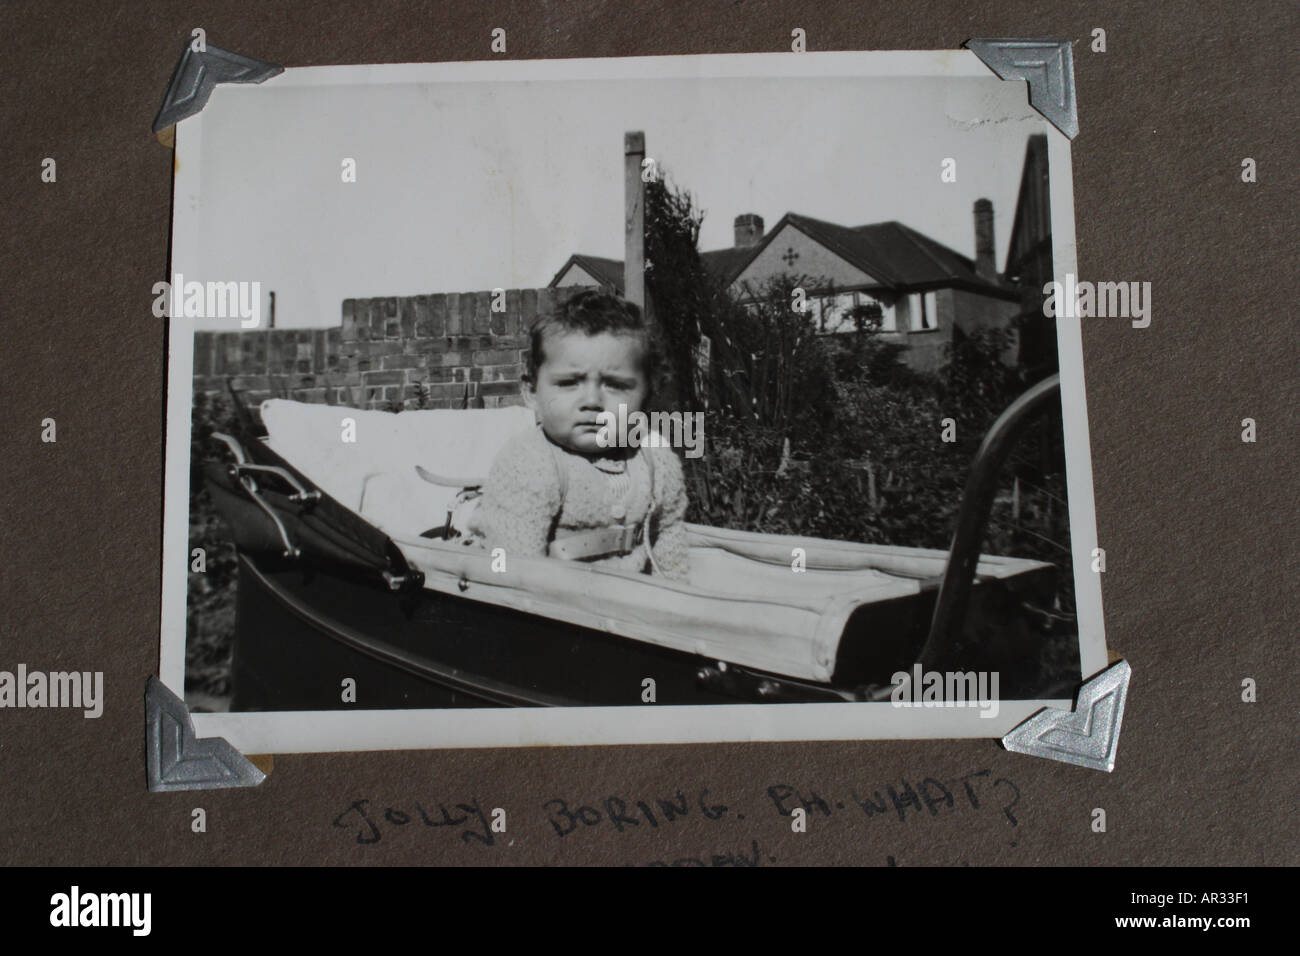 Nostalgia old black and white photograph showing baby aged 6 months old in old fashioned large pram taken in mid 1950s